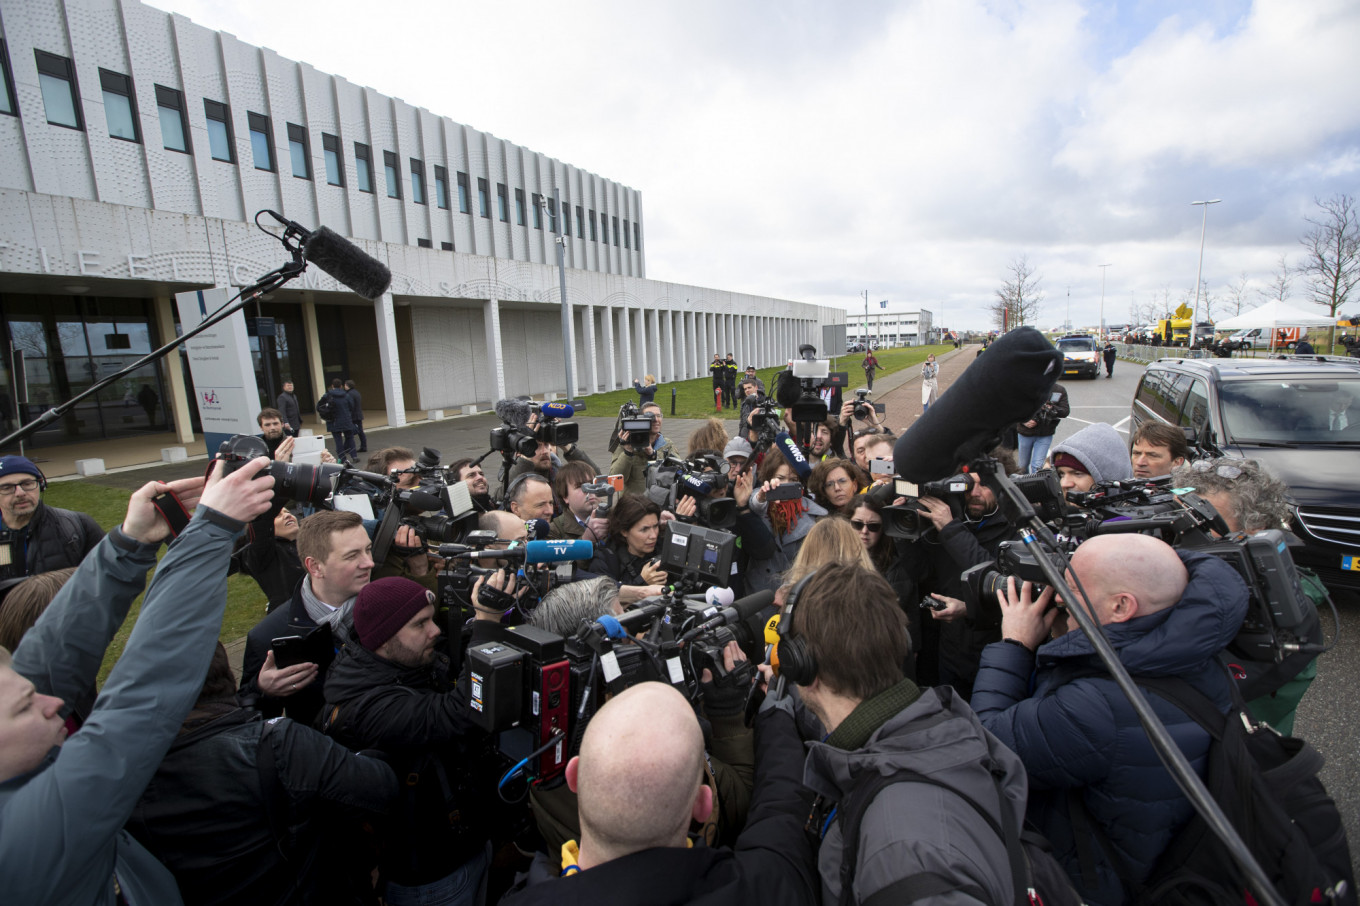 MH17 Trial Updates: March 9 - The Moscow Times